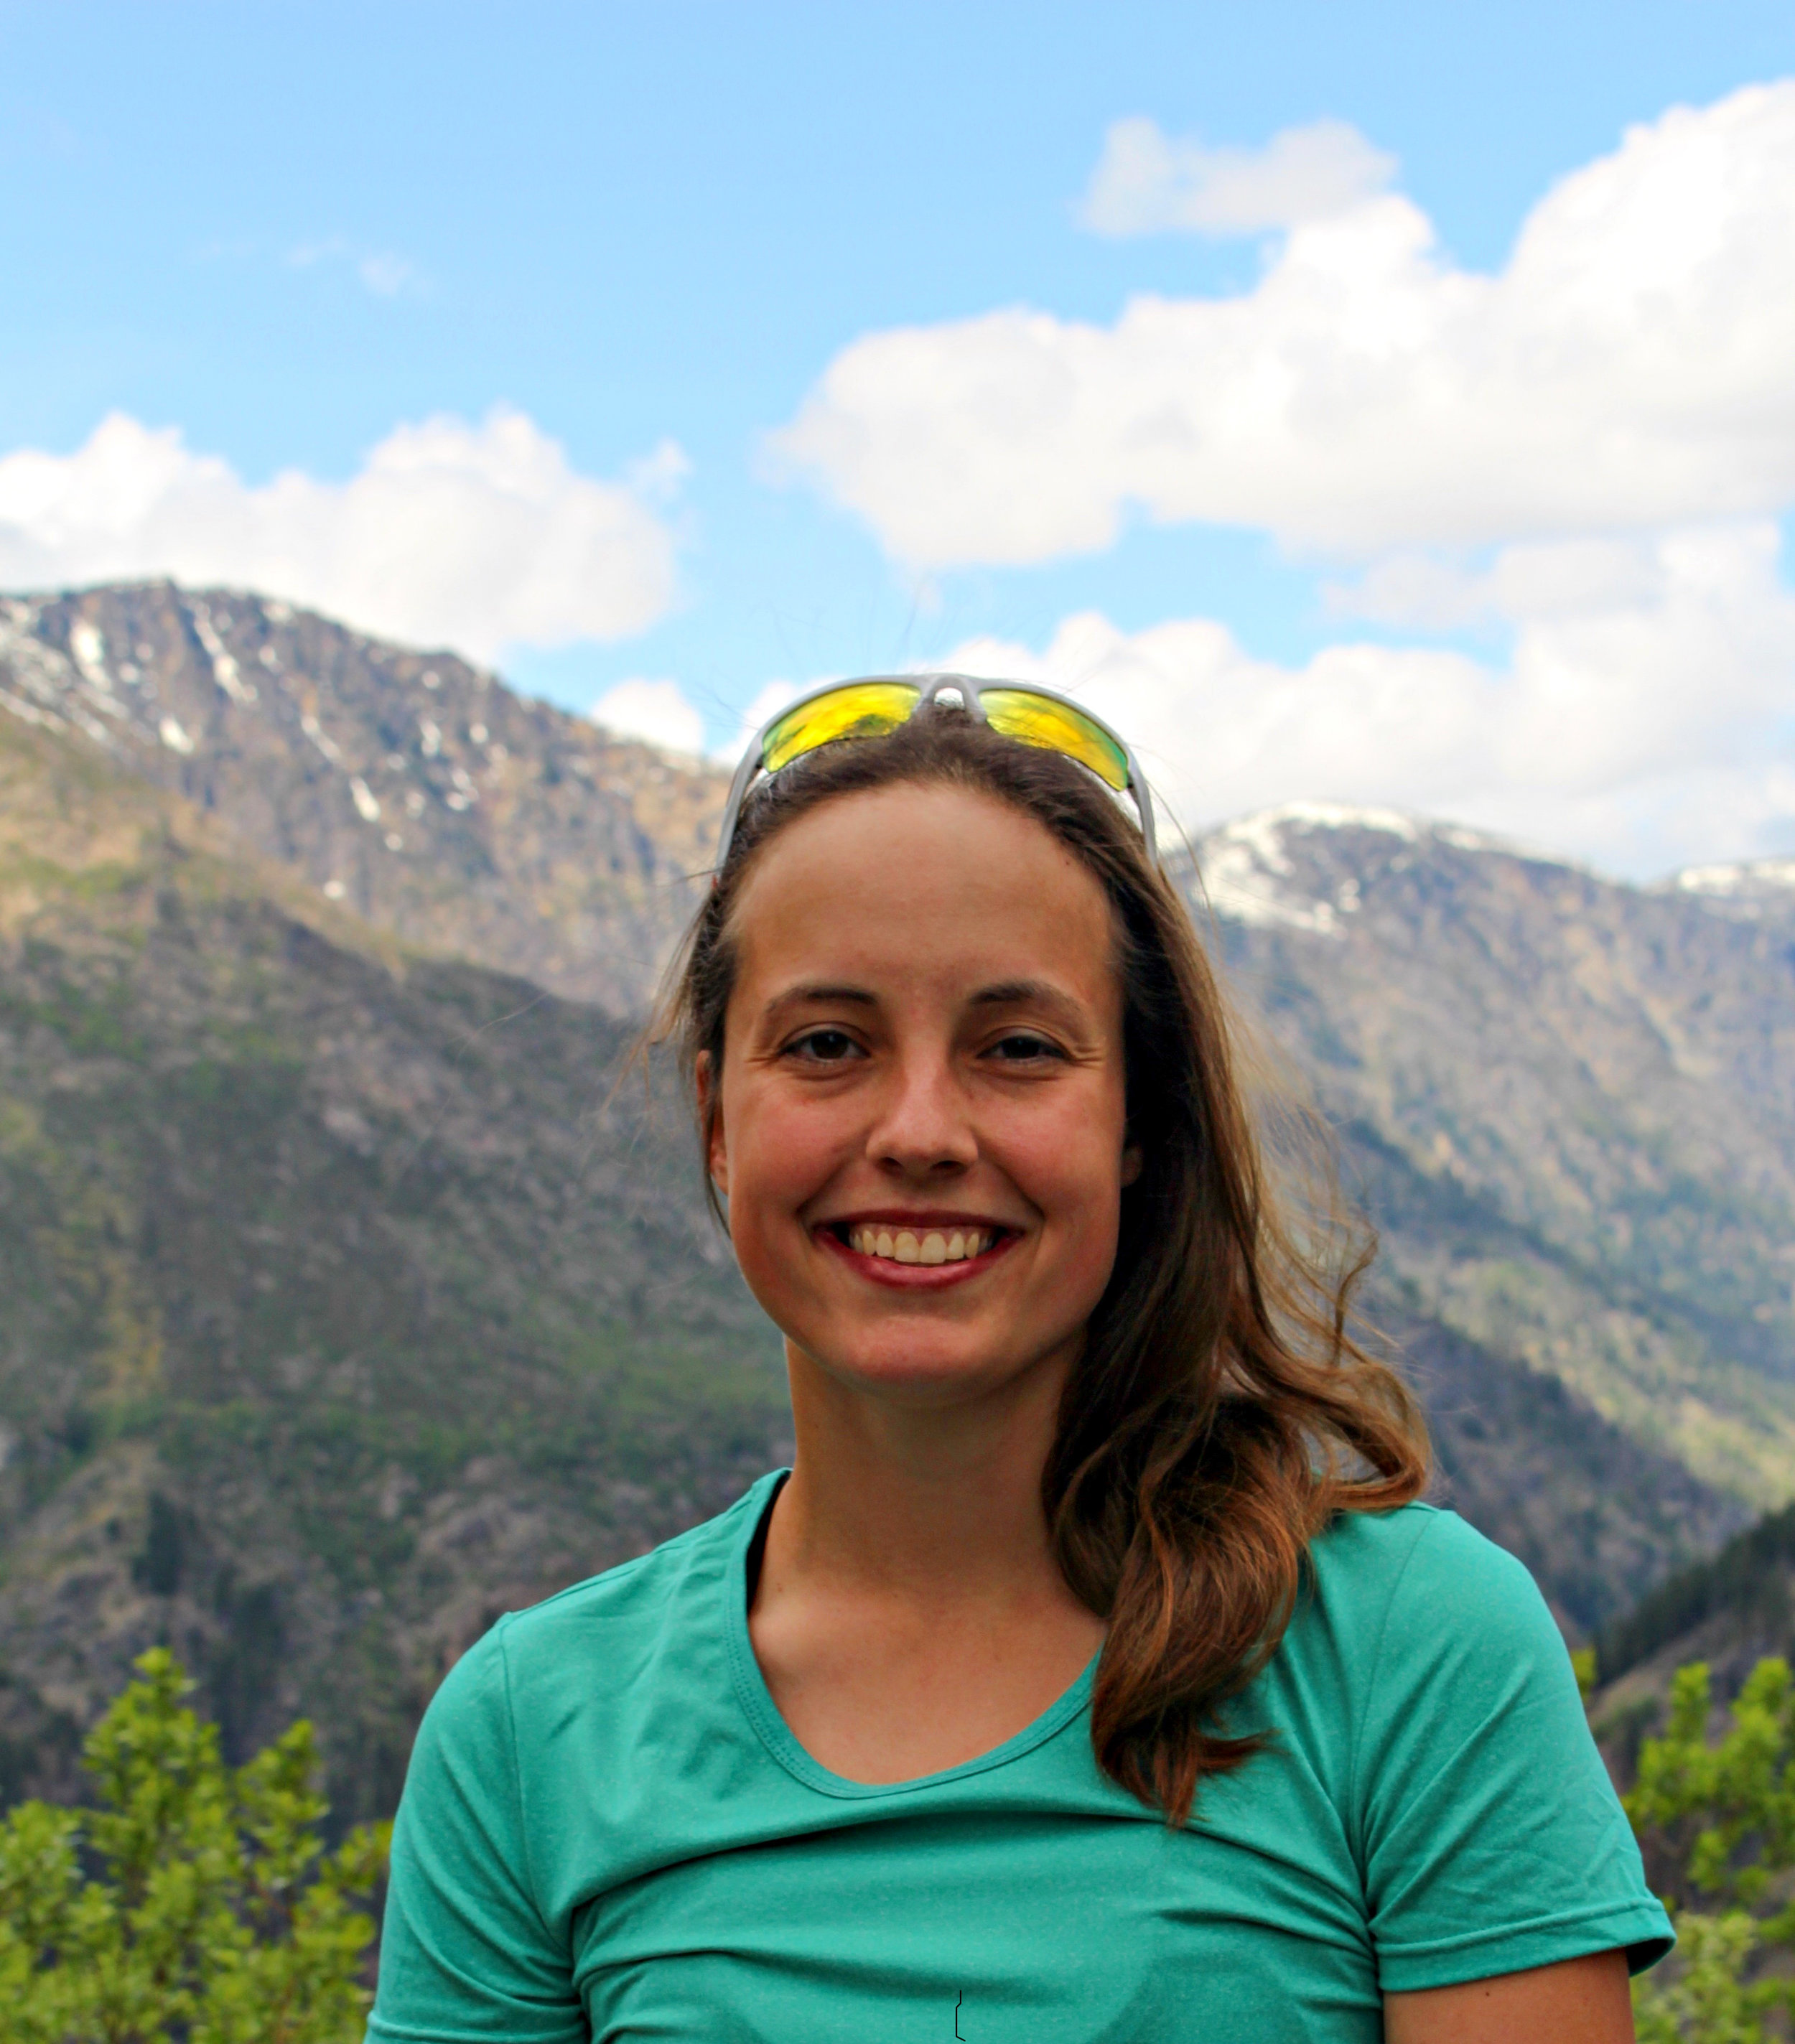 Taylor Dayton, Water Resources Engineer